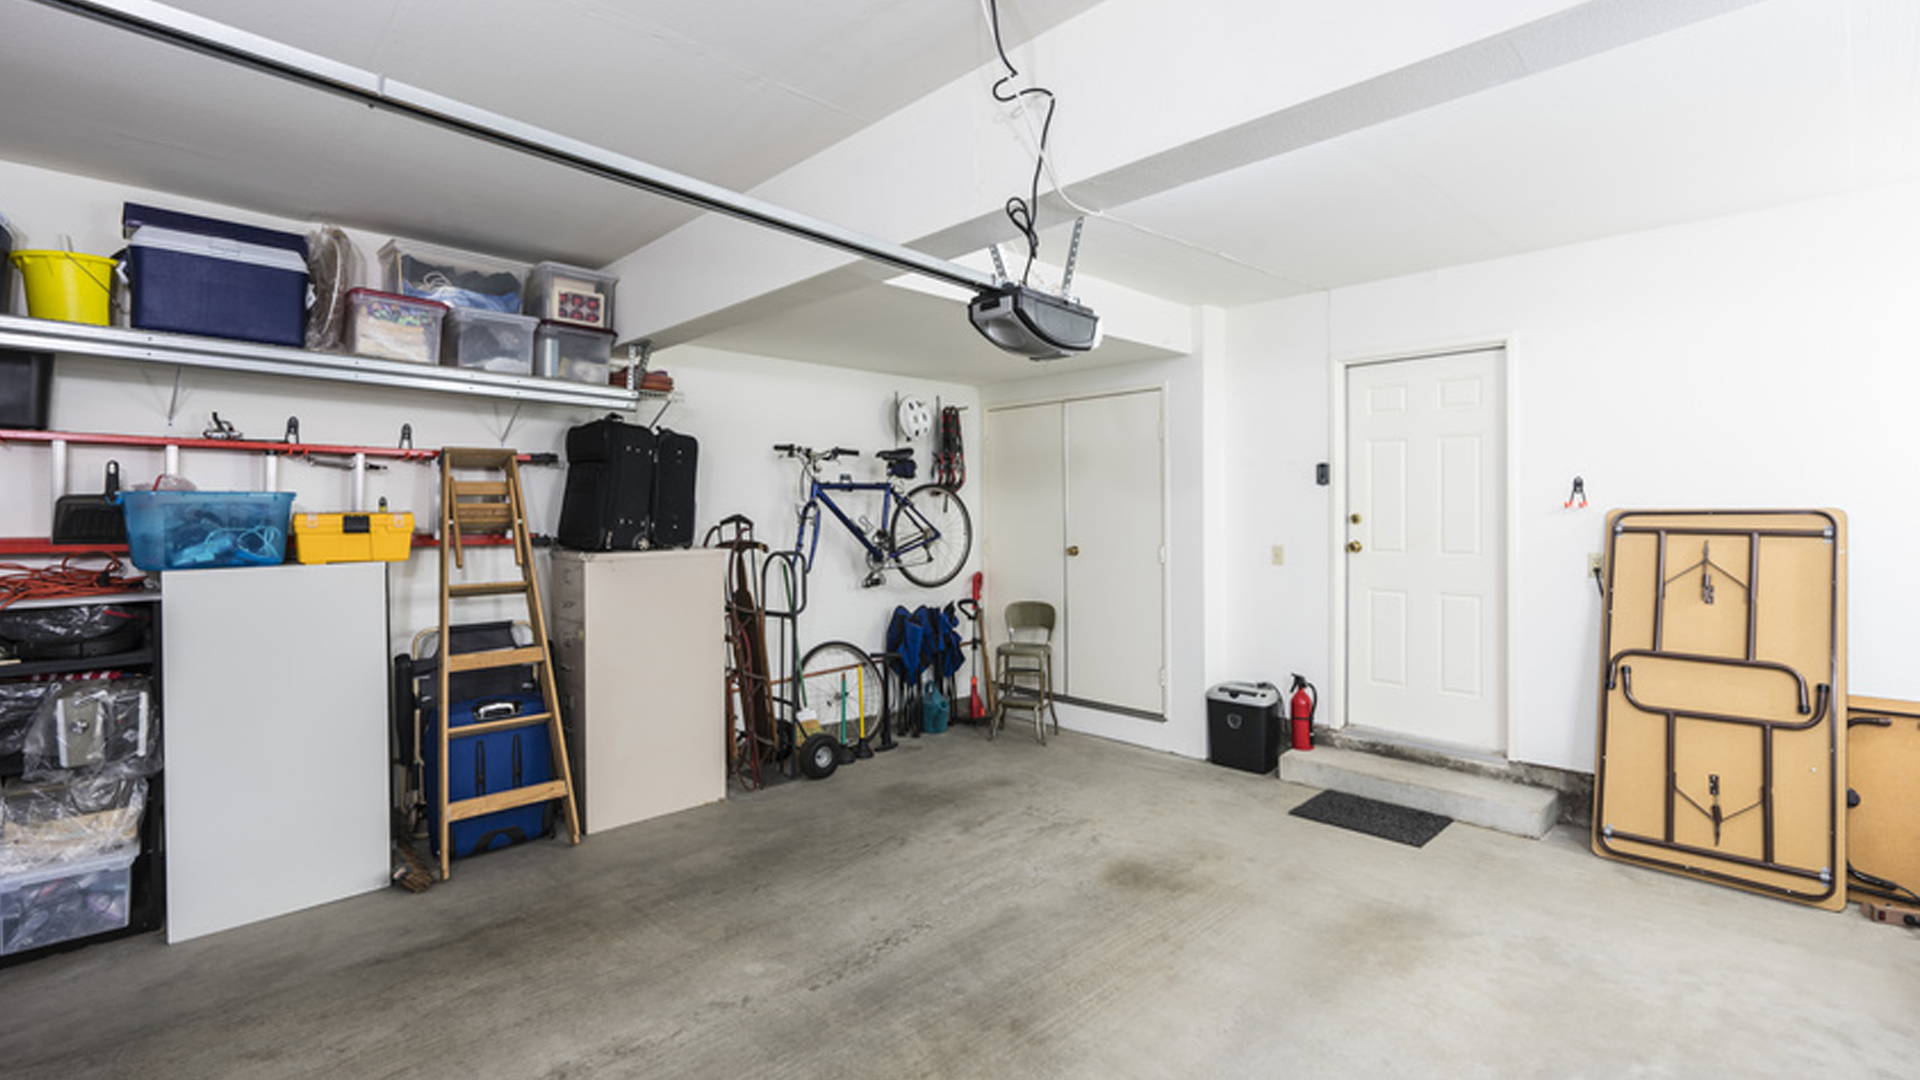 GARAGE RENOVATION MISTAKES TO AVOID